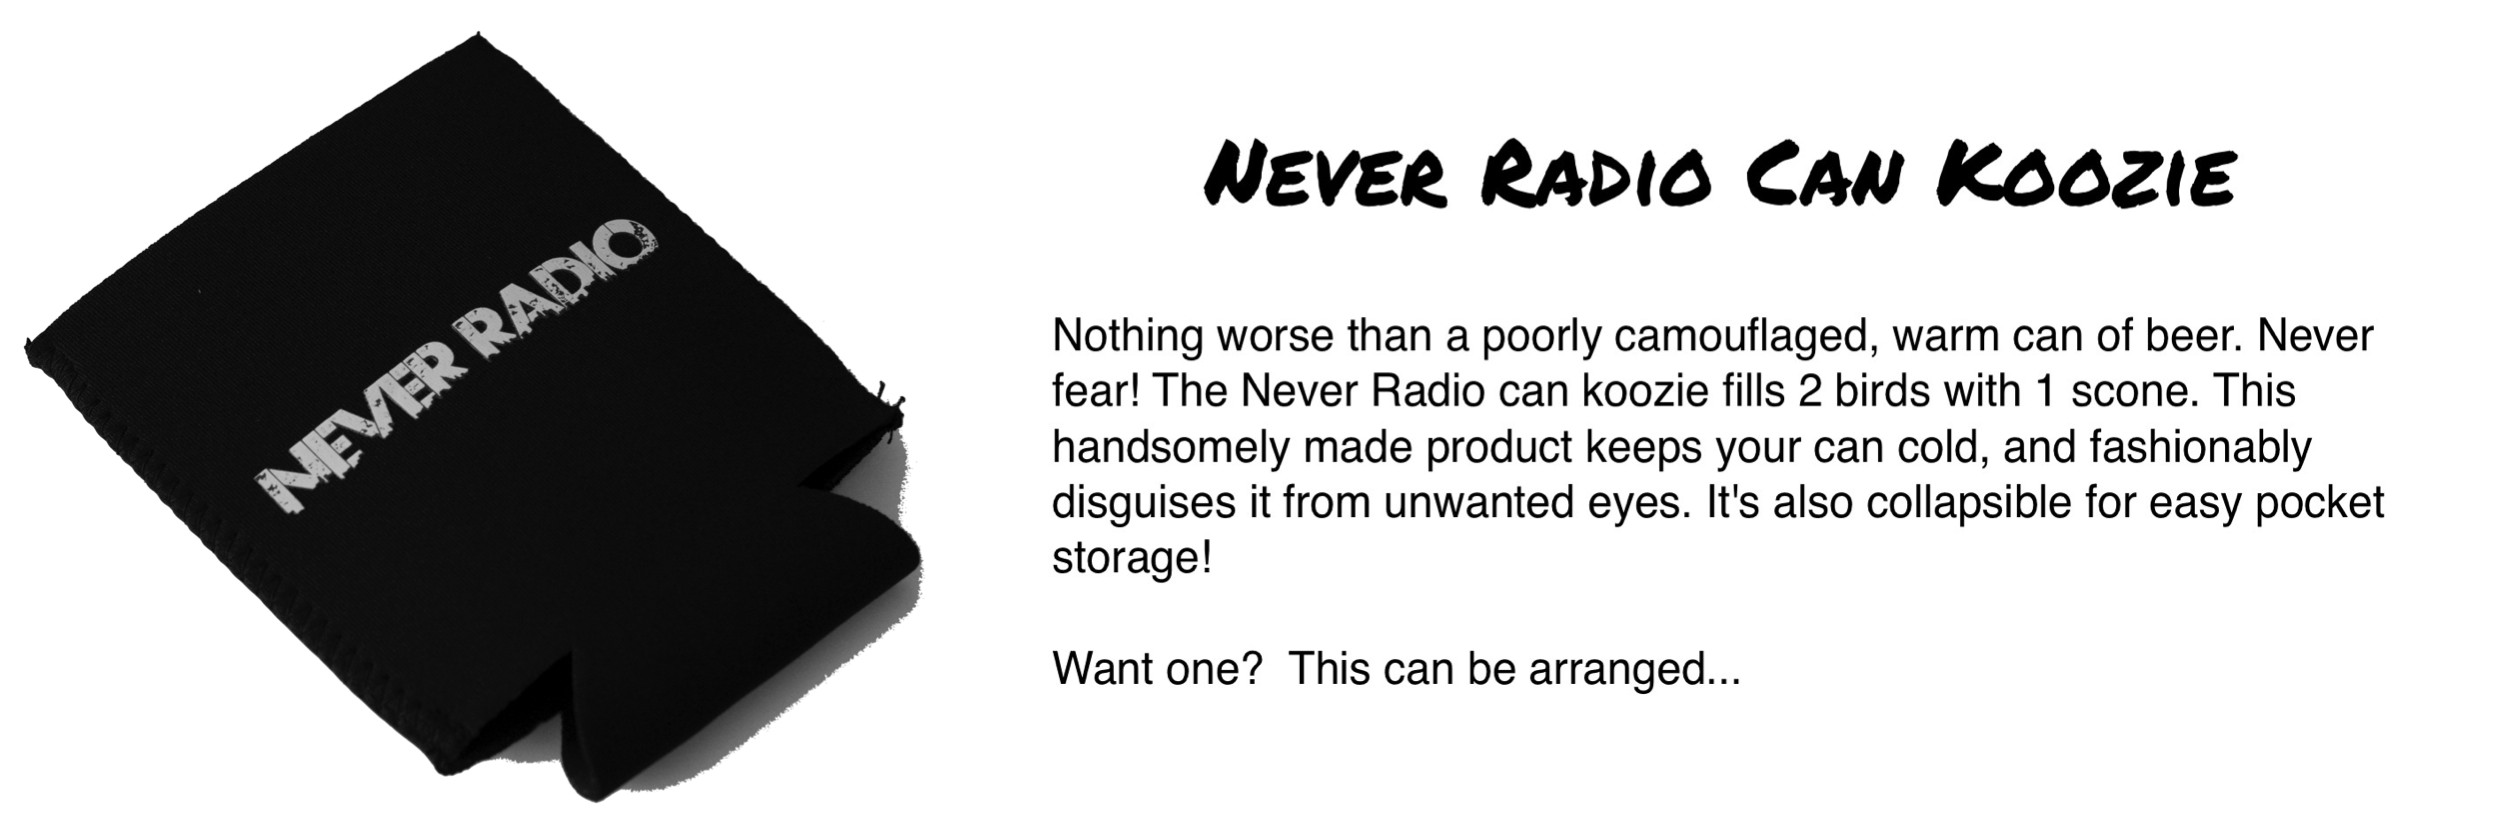 Never Radio Can Koozie